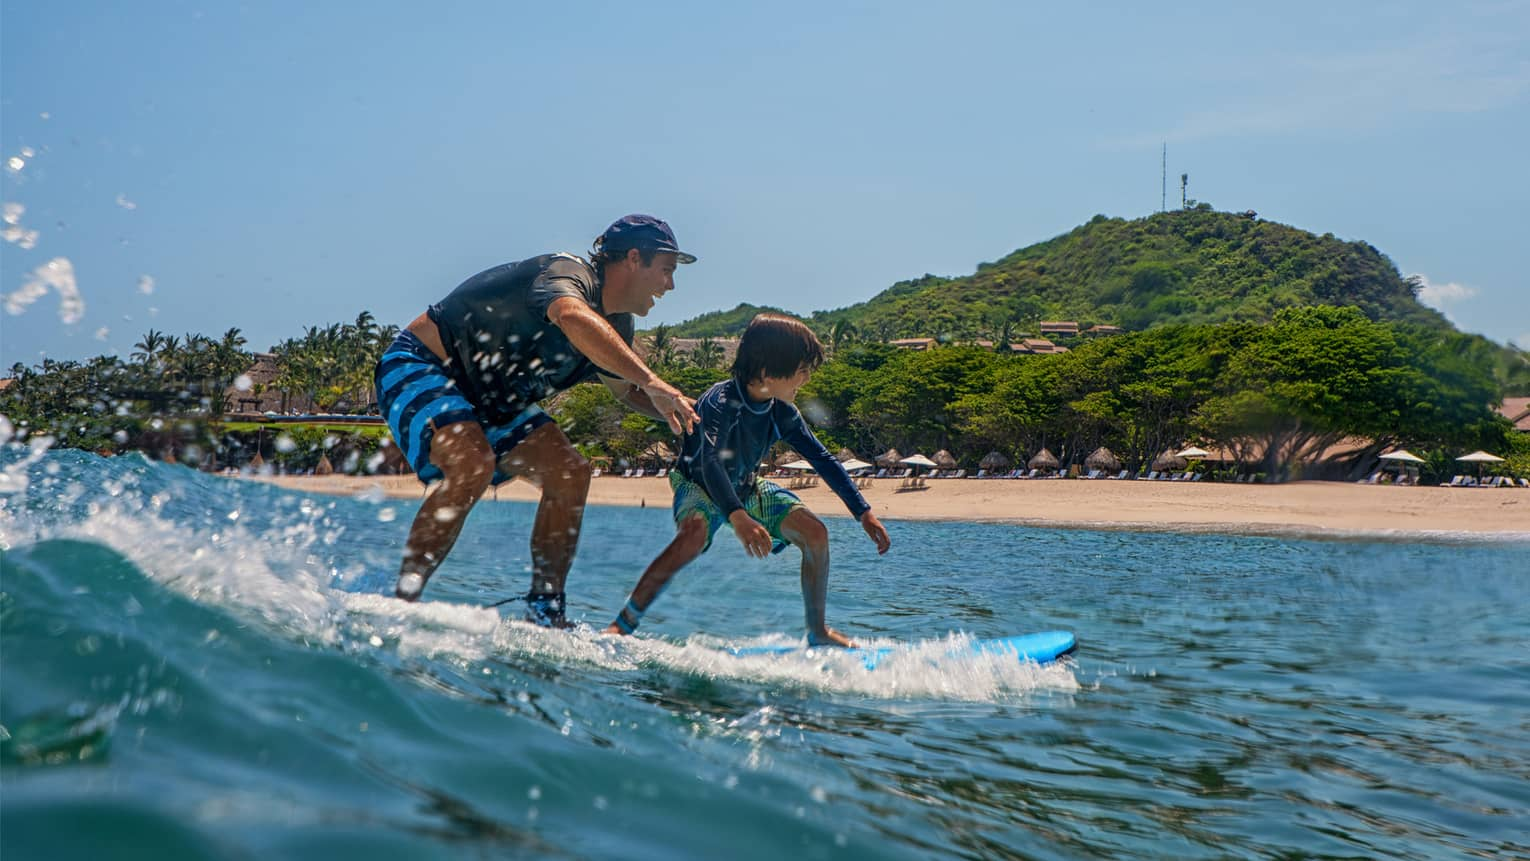 Man and boy balance on blue surfboard on wave, beach in background